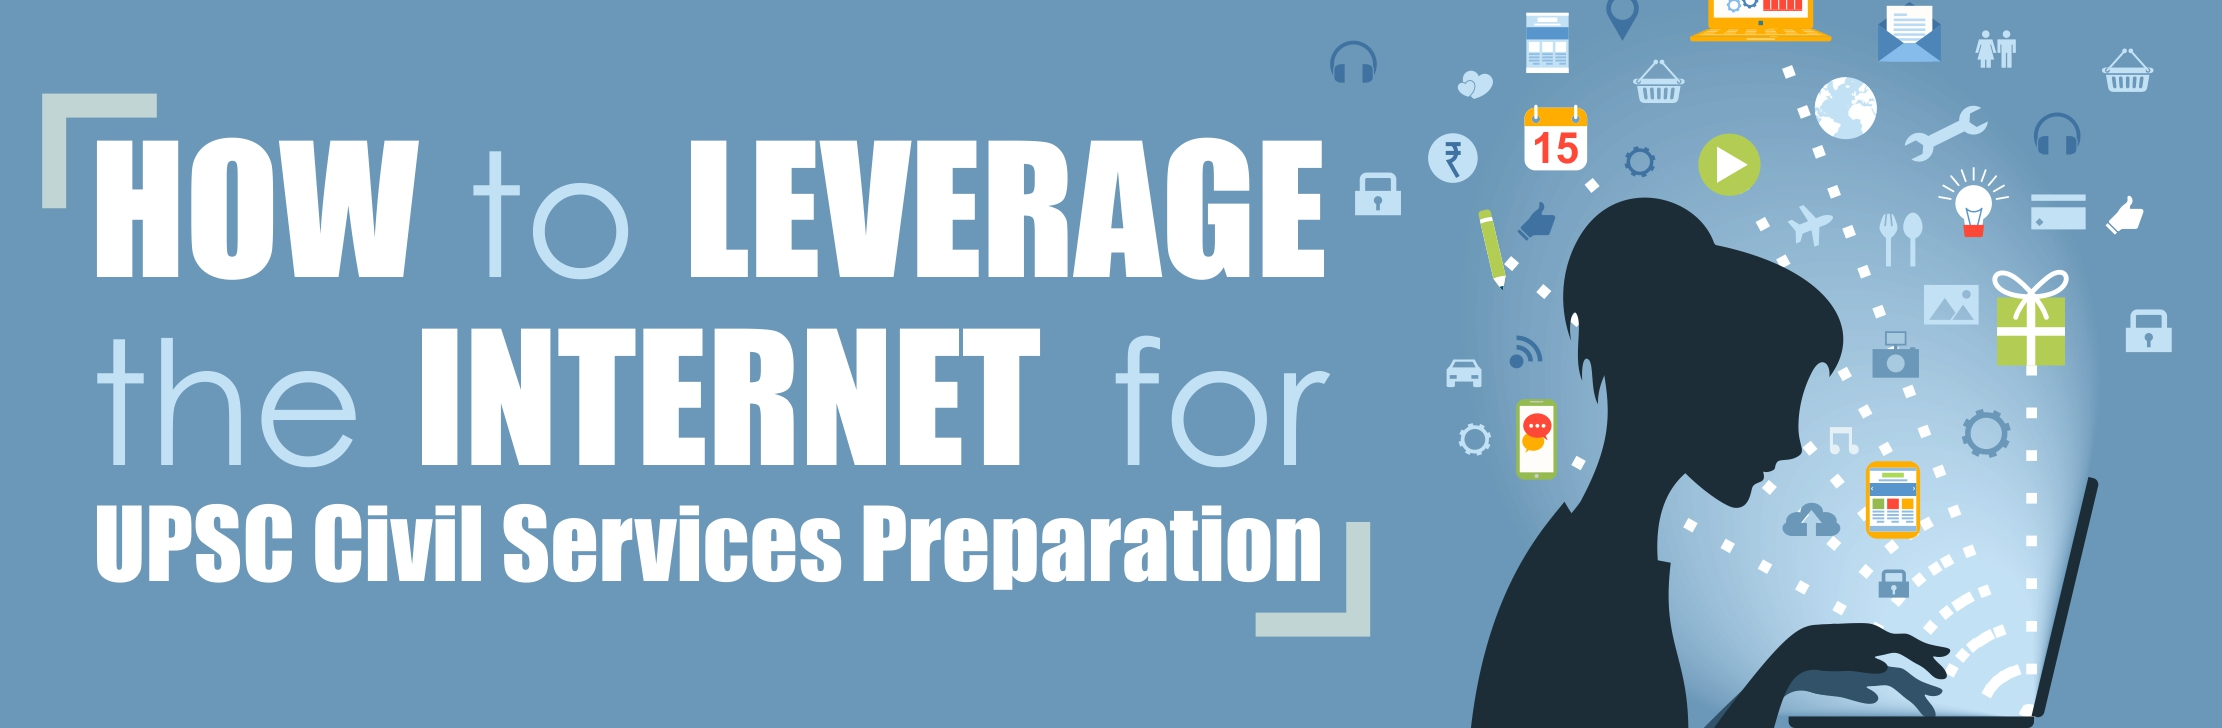 How to Leverage the Internet for UPSC Civil Services Preparation